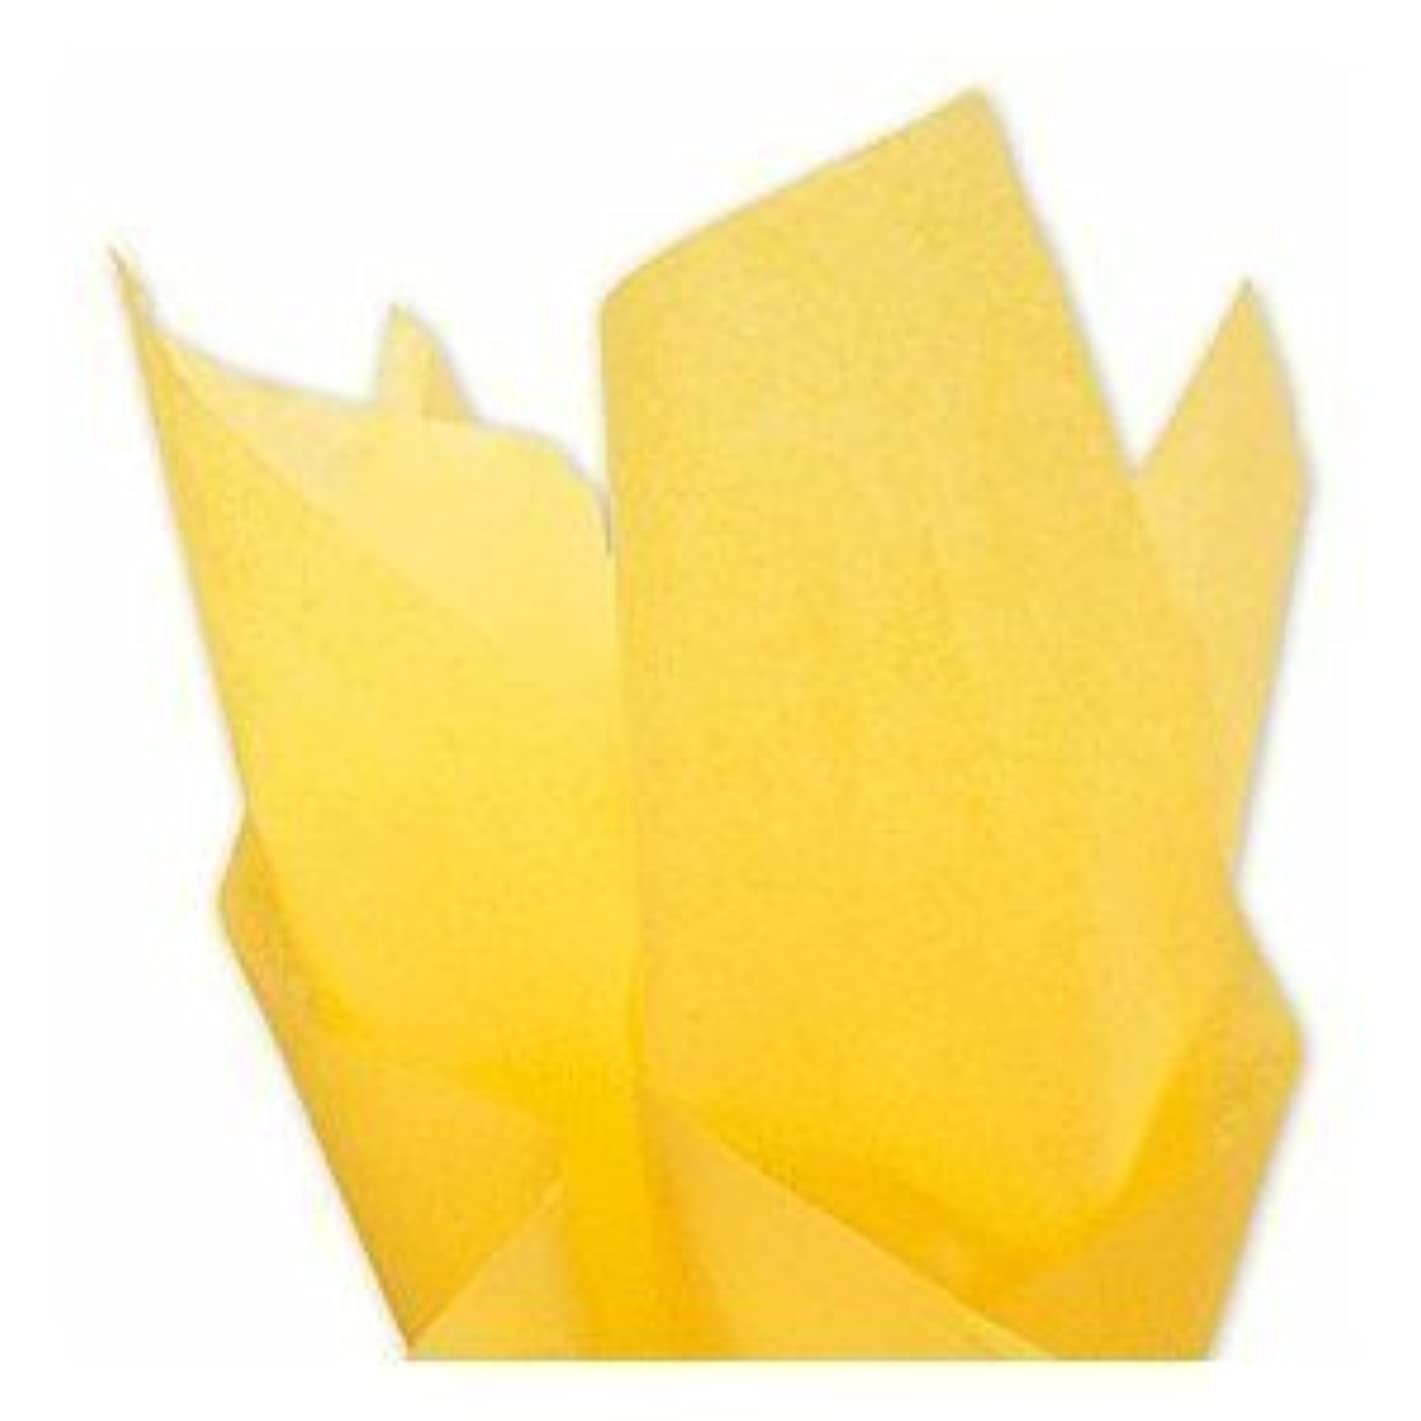 Buttercup Yellow Tissue Paper - 20 inches x 30 inches - 20 sheets